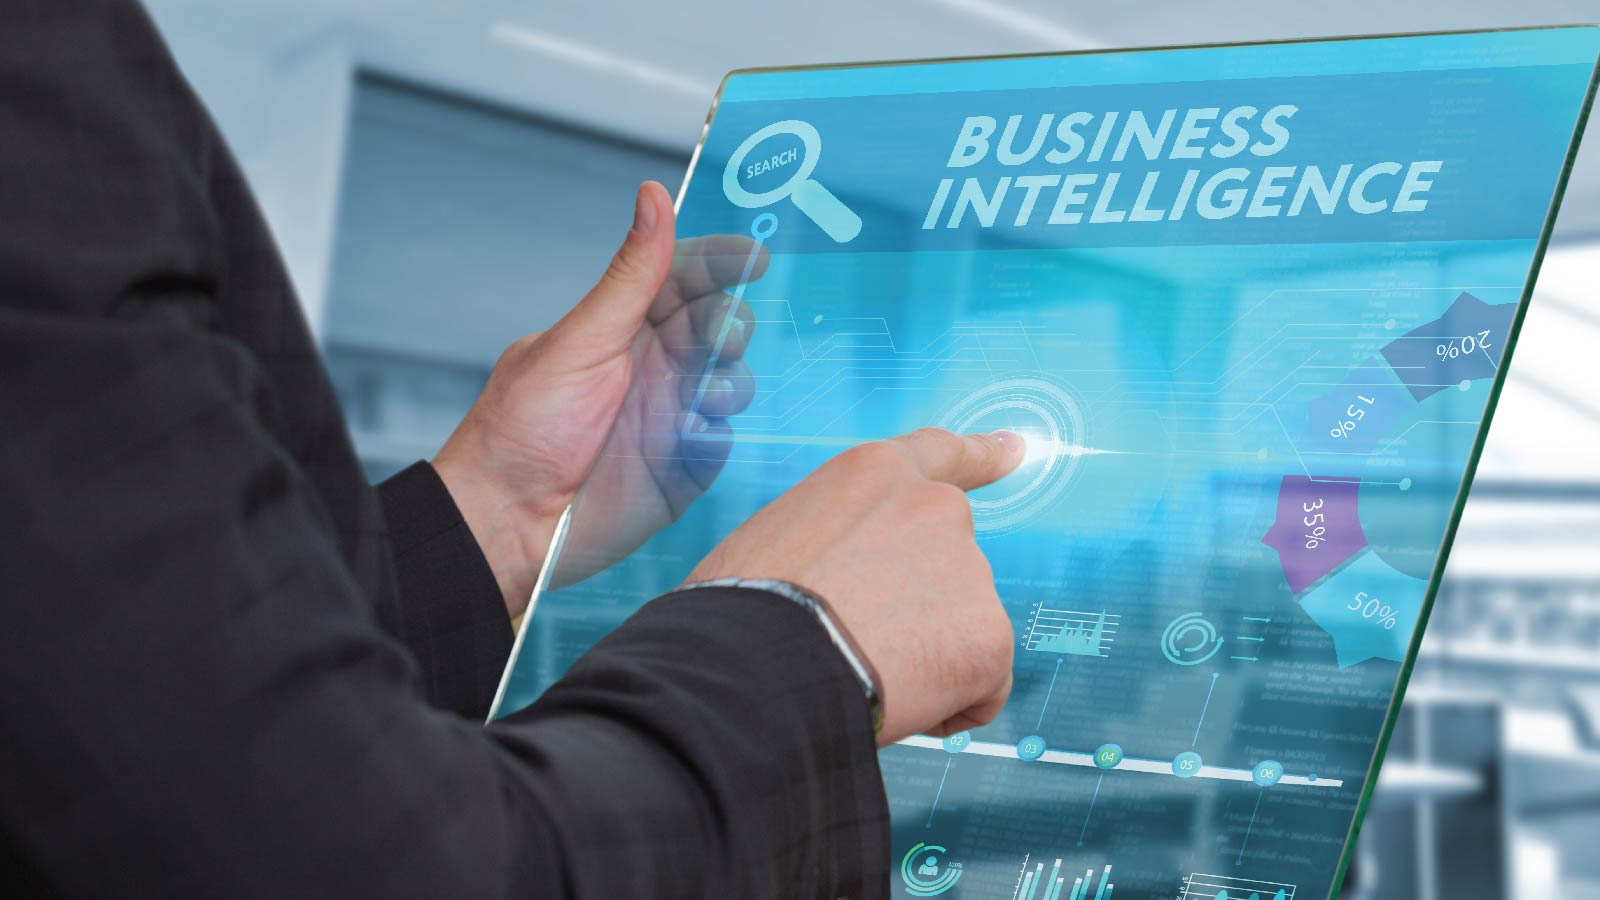 How can enterprises manage data complexity with business intelligence